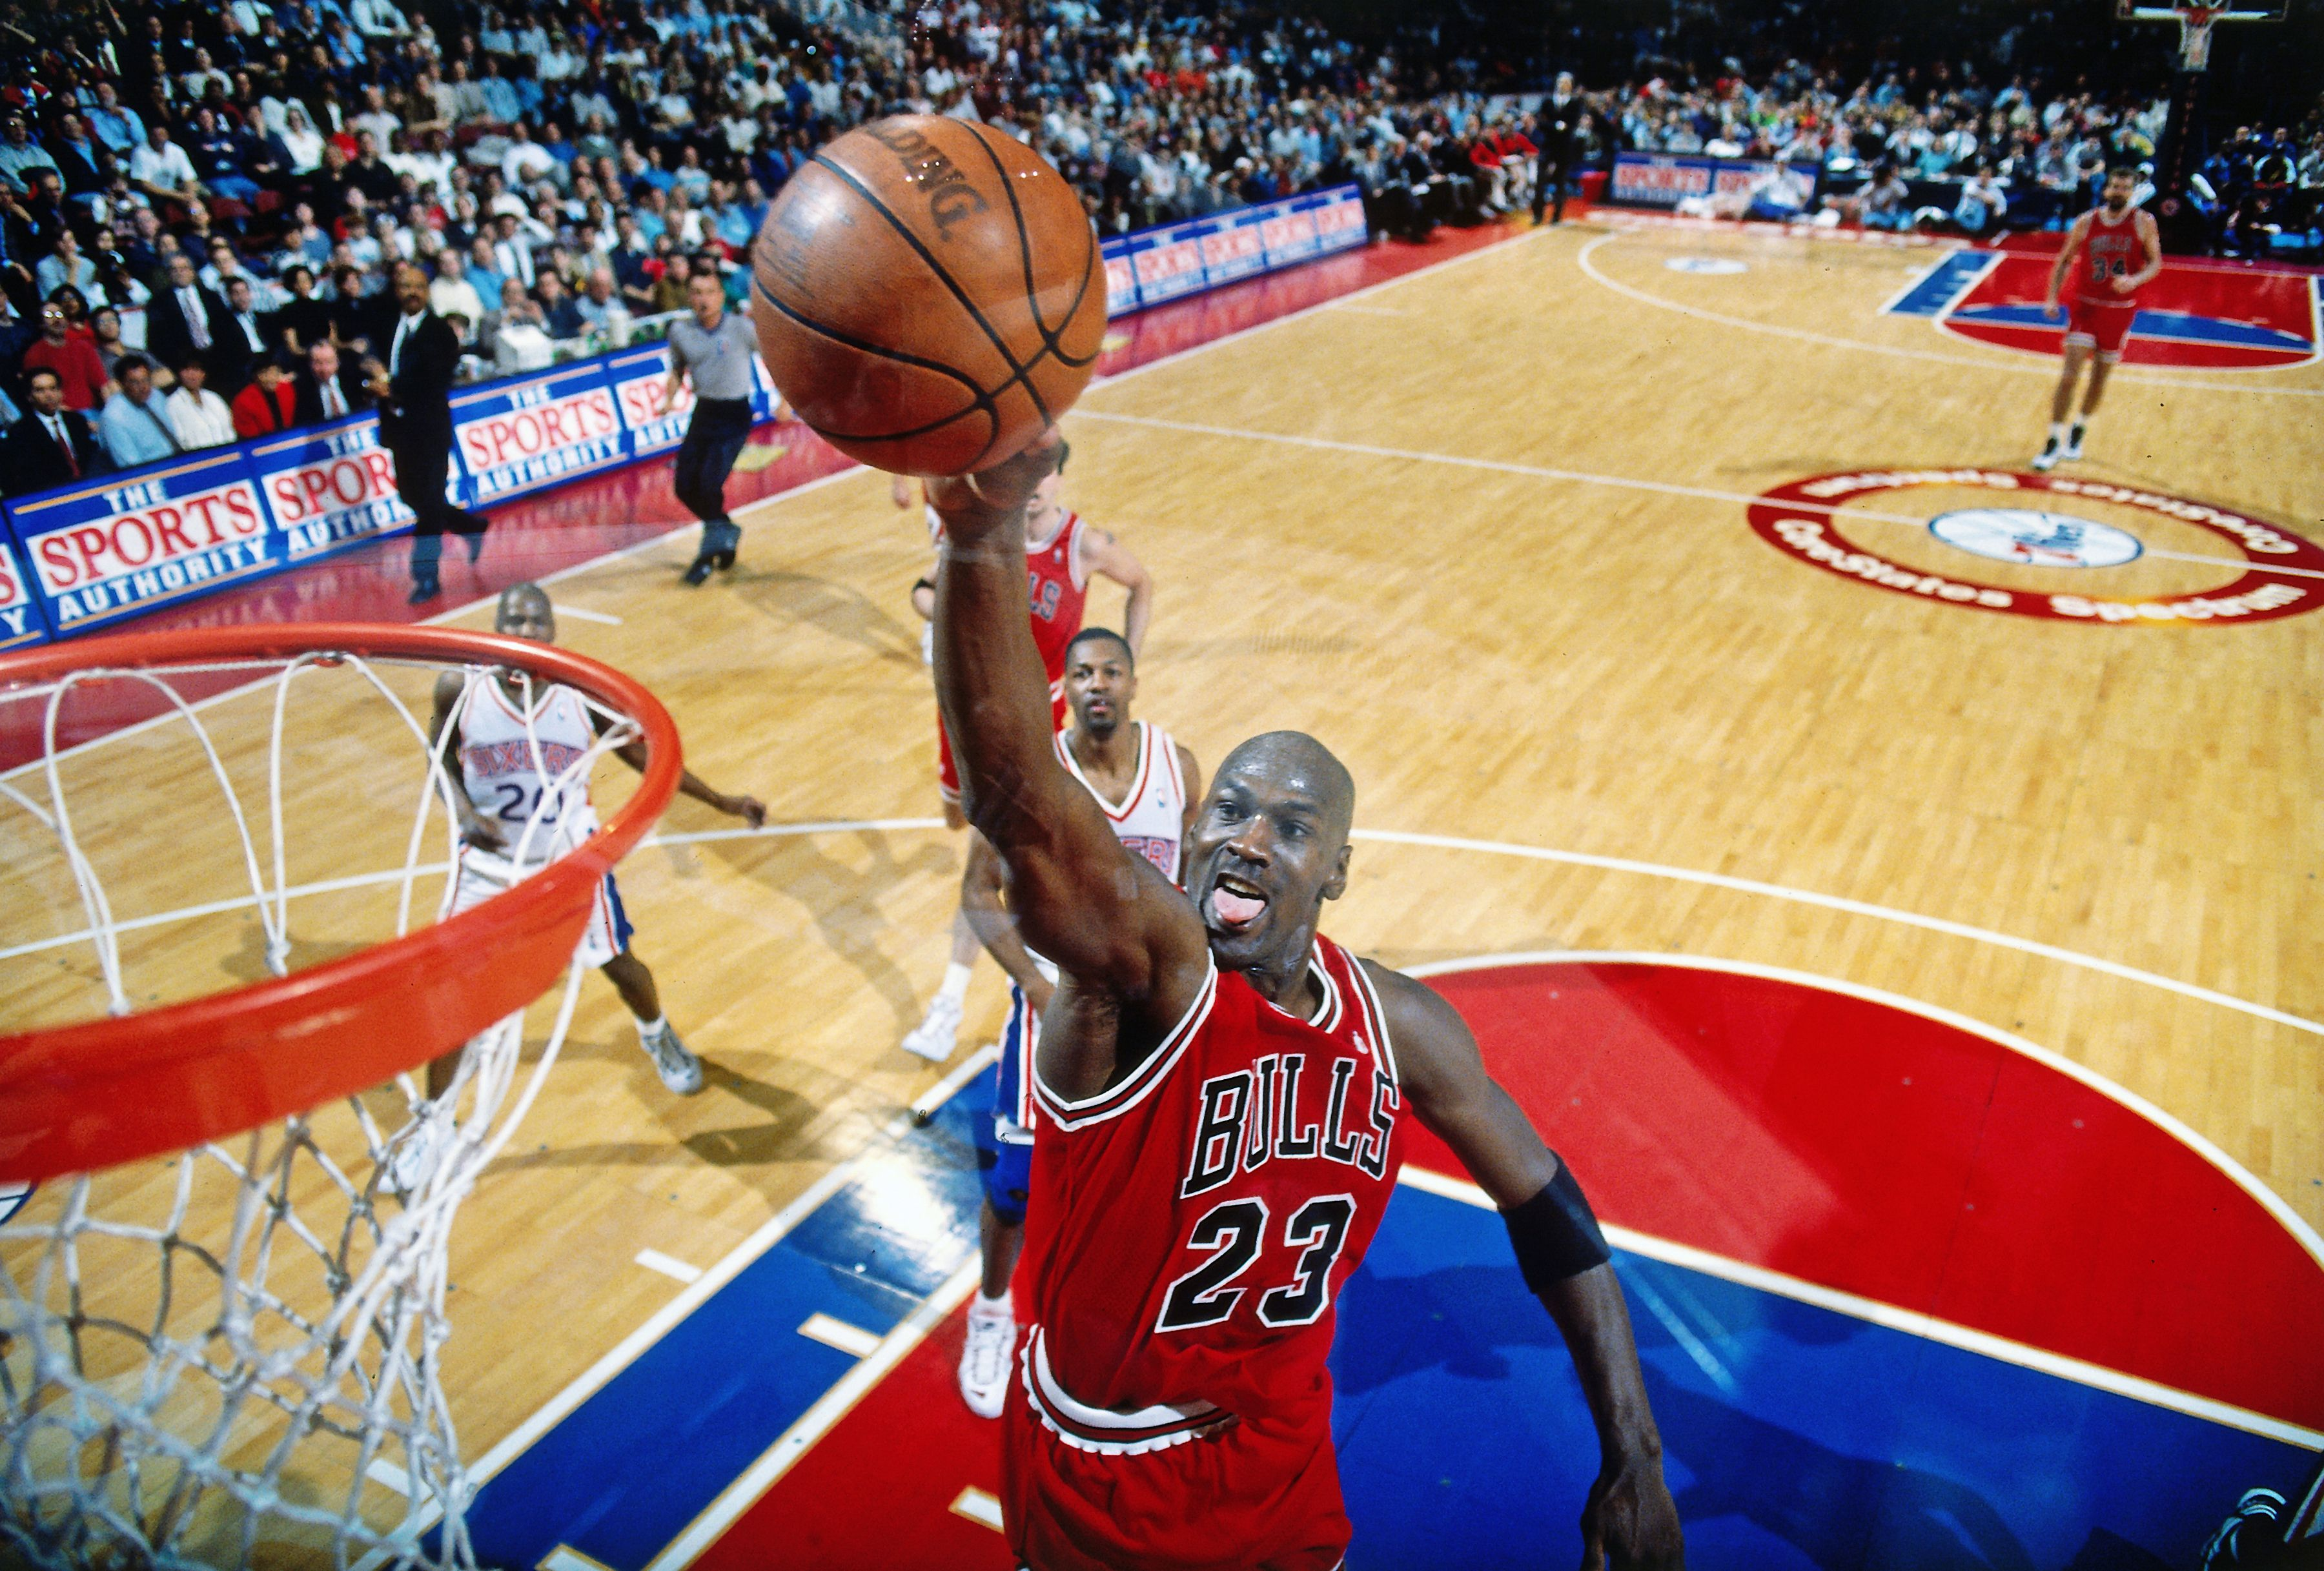 Michael Jordan scores his characteristic dunk against the Philadelphia 76ers in 1996 | Source: Getty Images